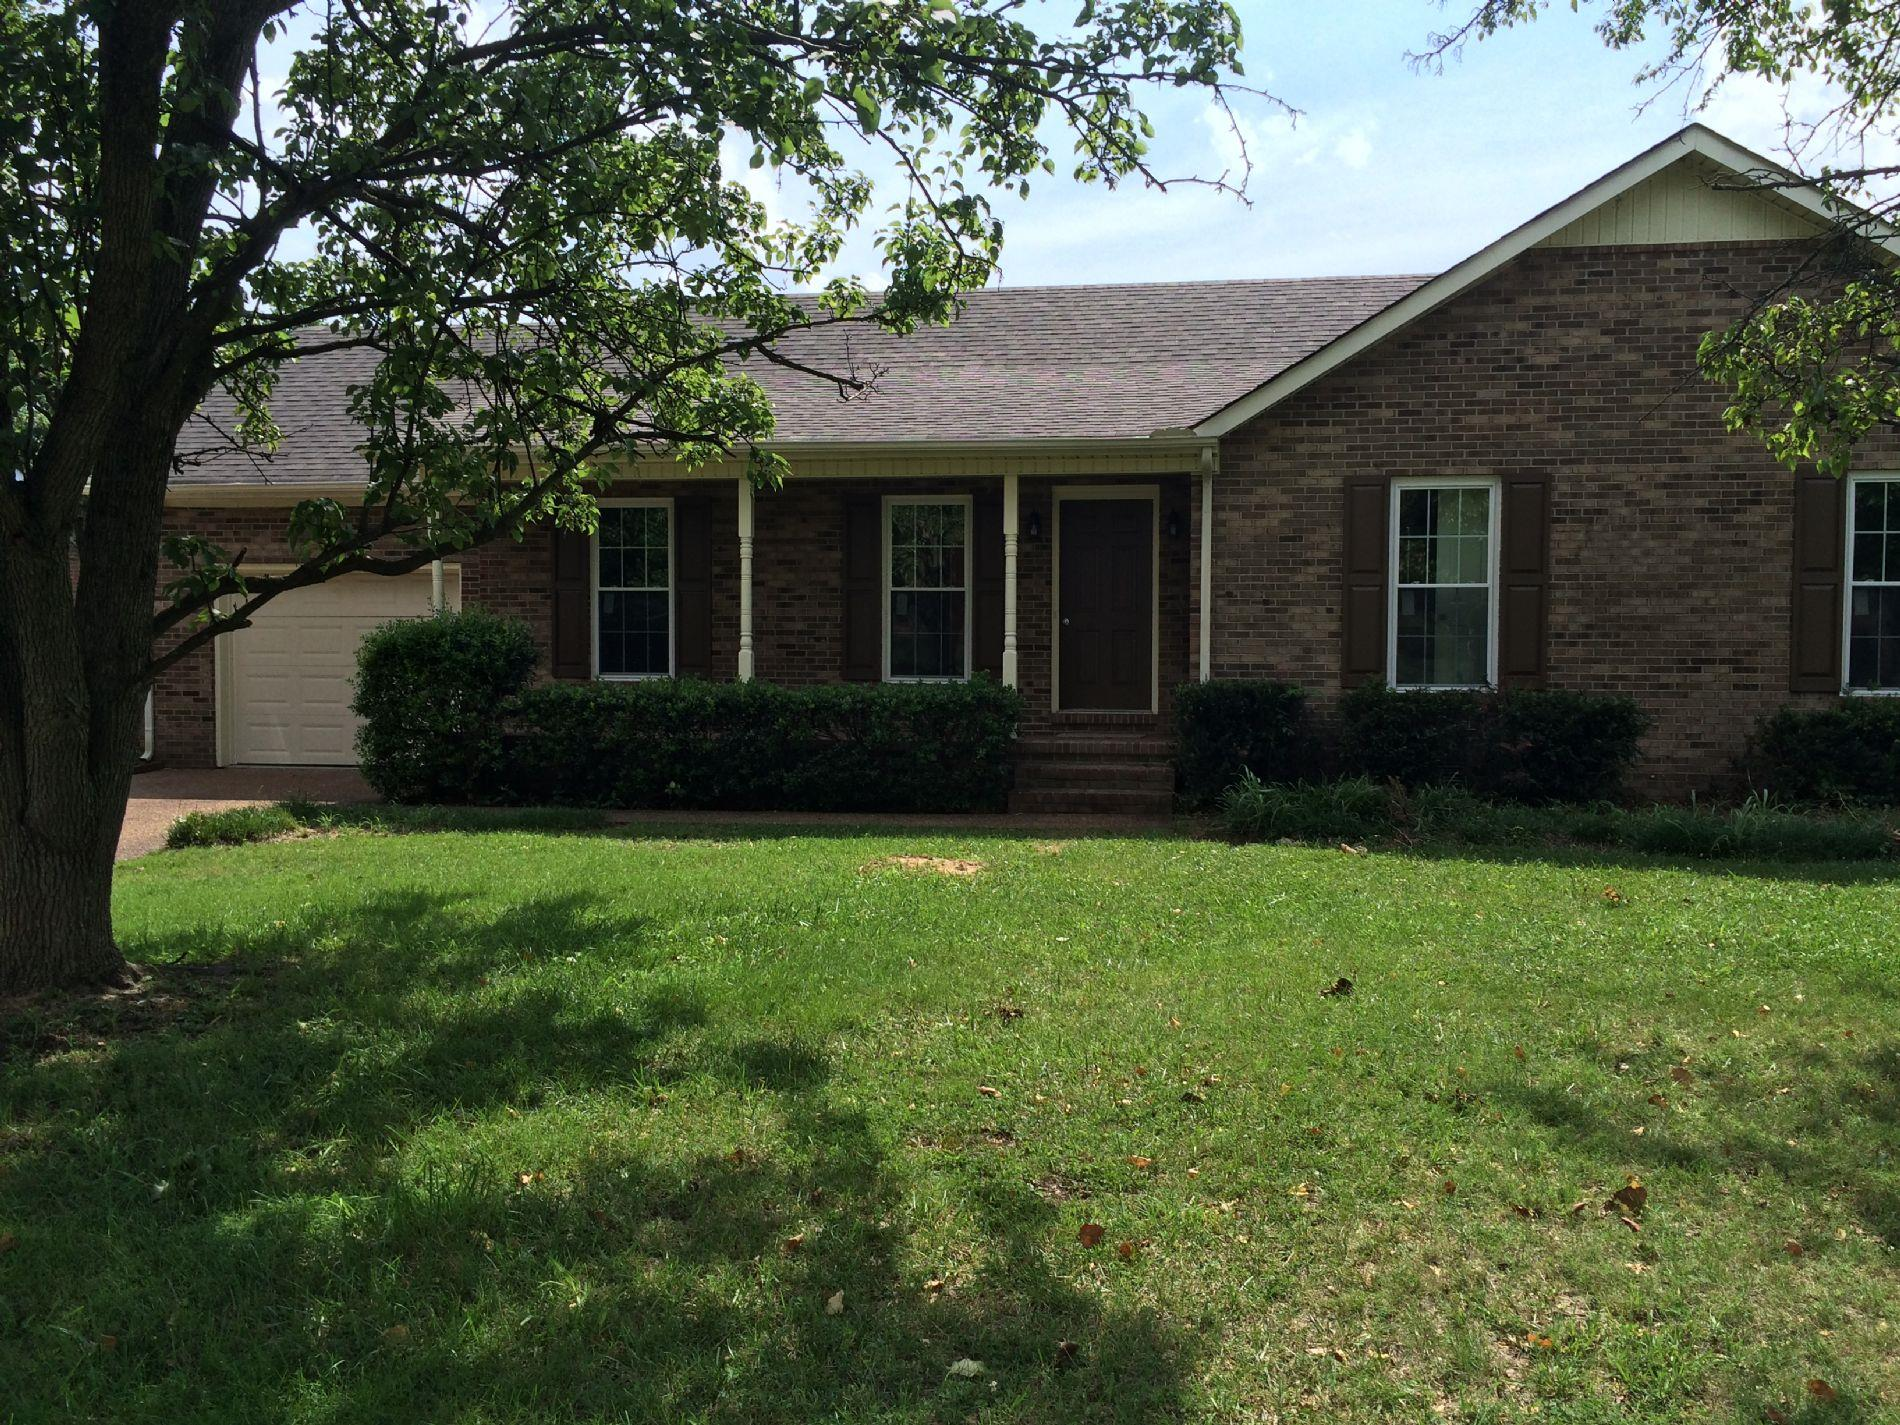 216 Bordeaux Ct, Smyrna, TN 37167